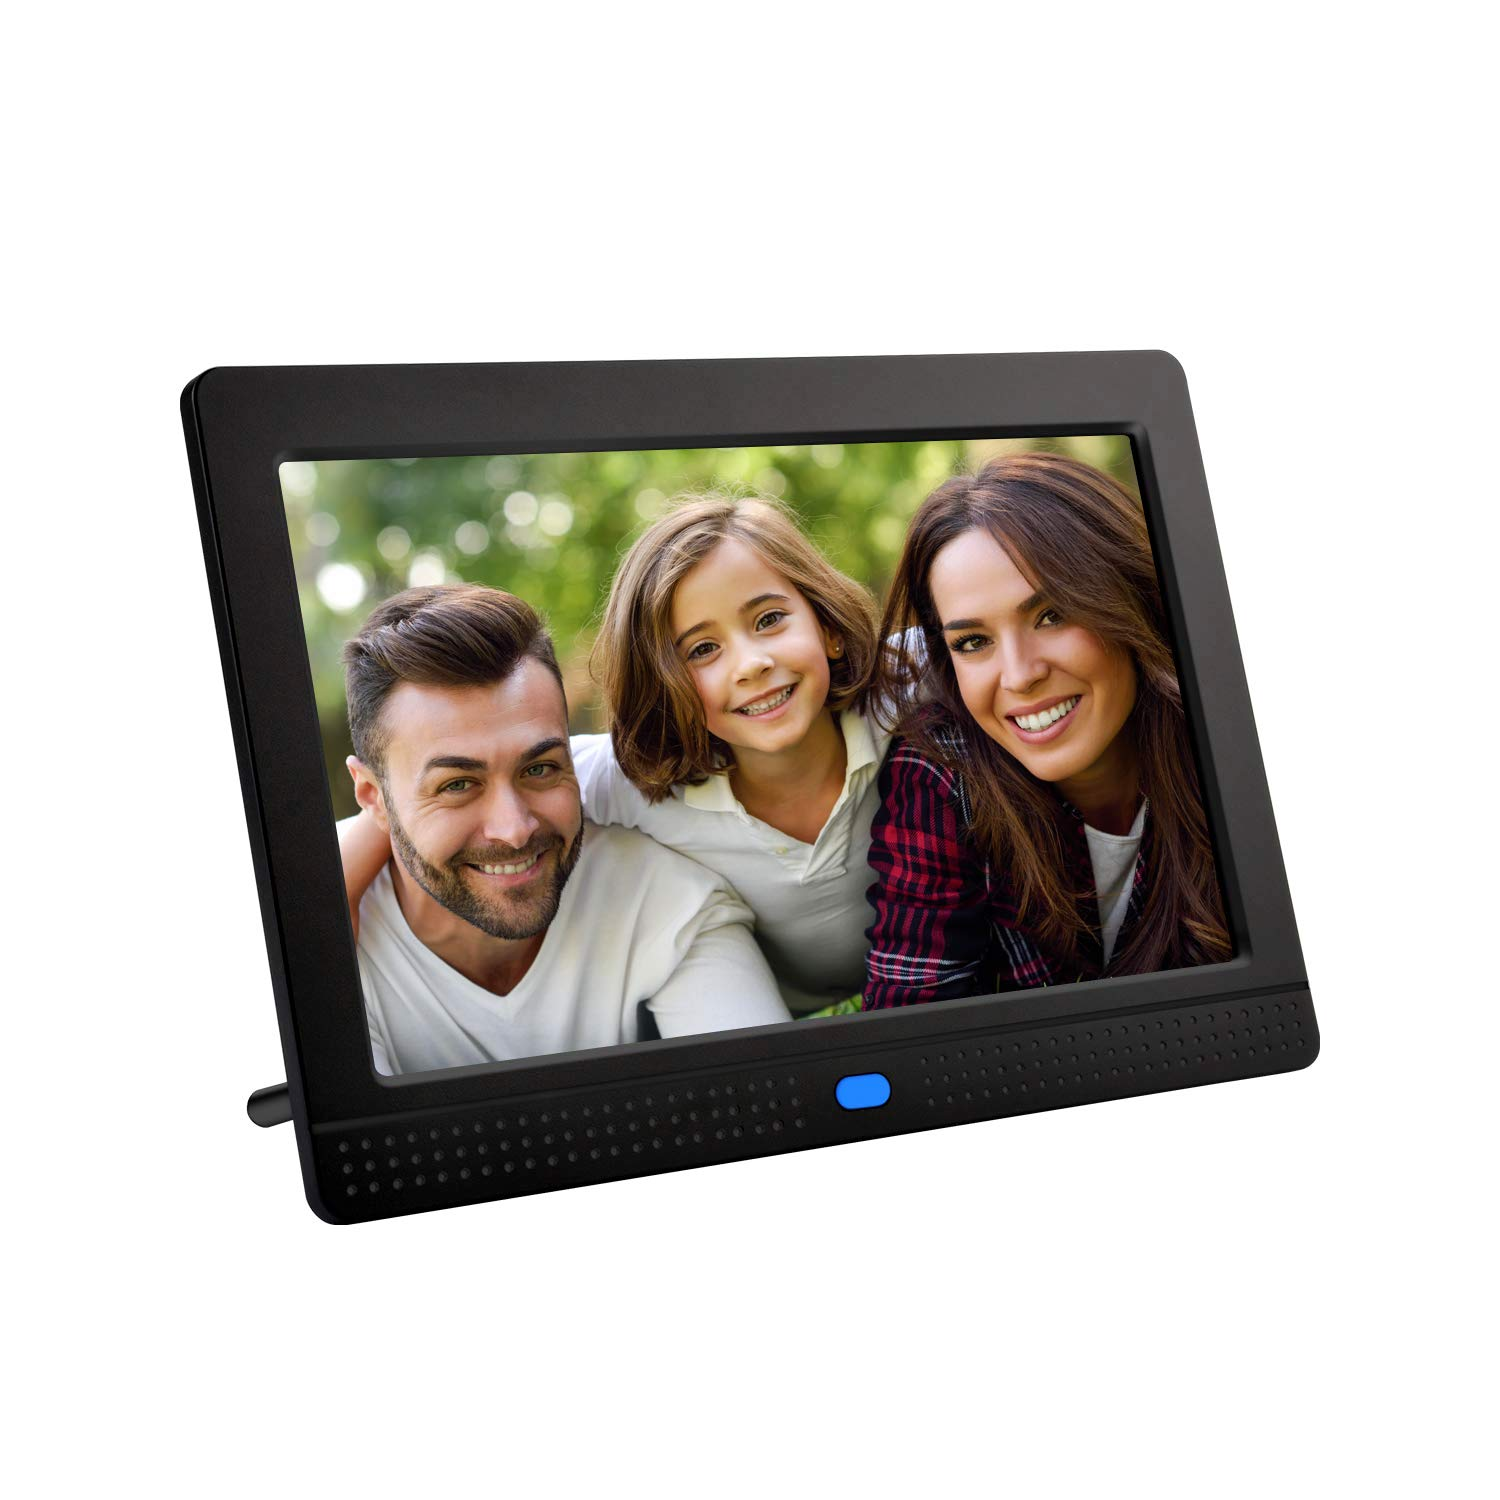 Digital Photo Frame,PowerDoF 7 Inch Widescreen Digital Picture Frame with High Resolution IPS Display Motion Sensor and Remote Control by PowerDoF